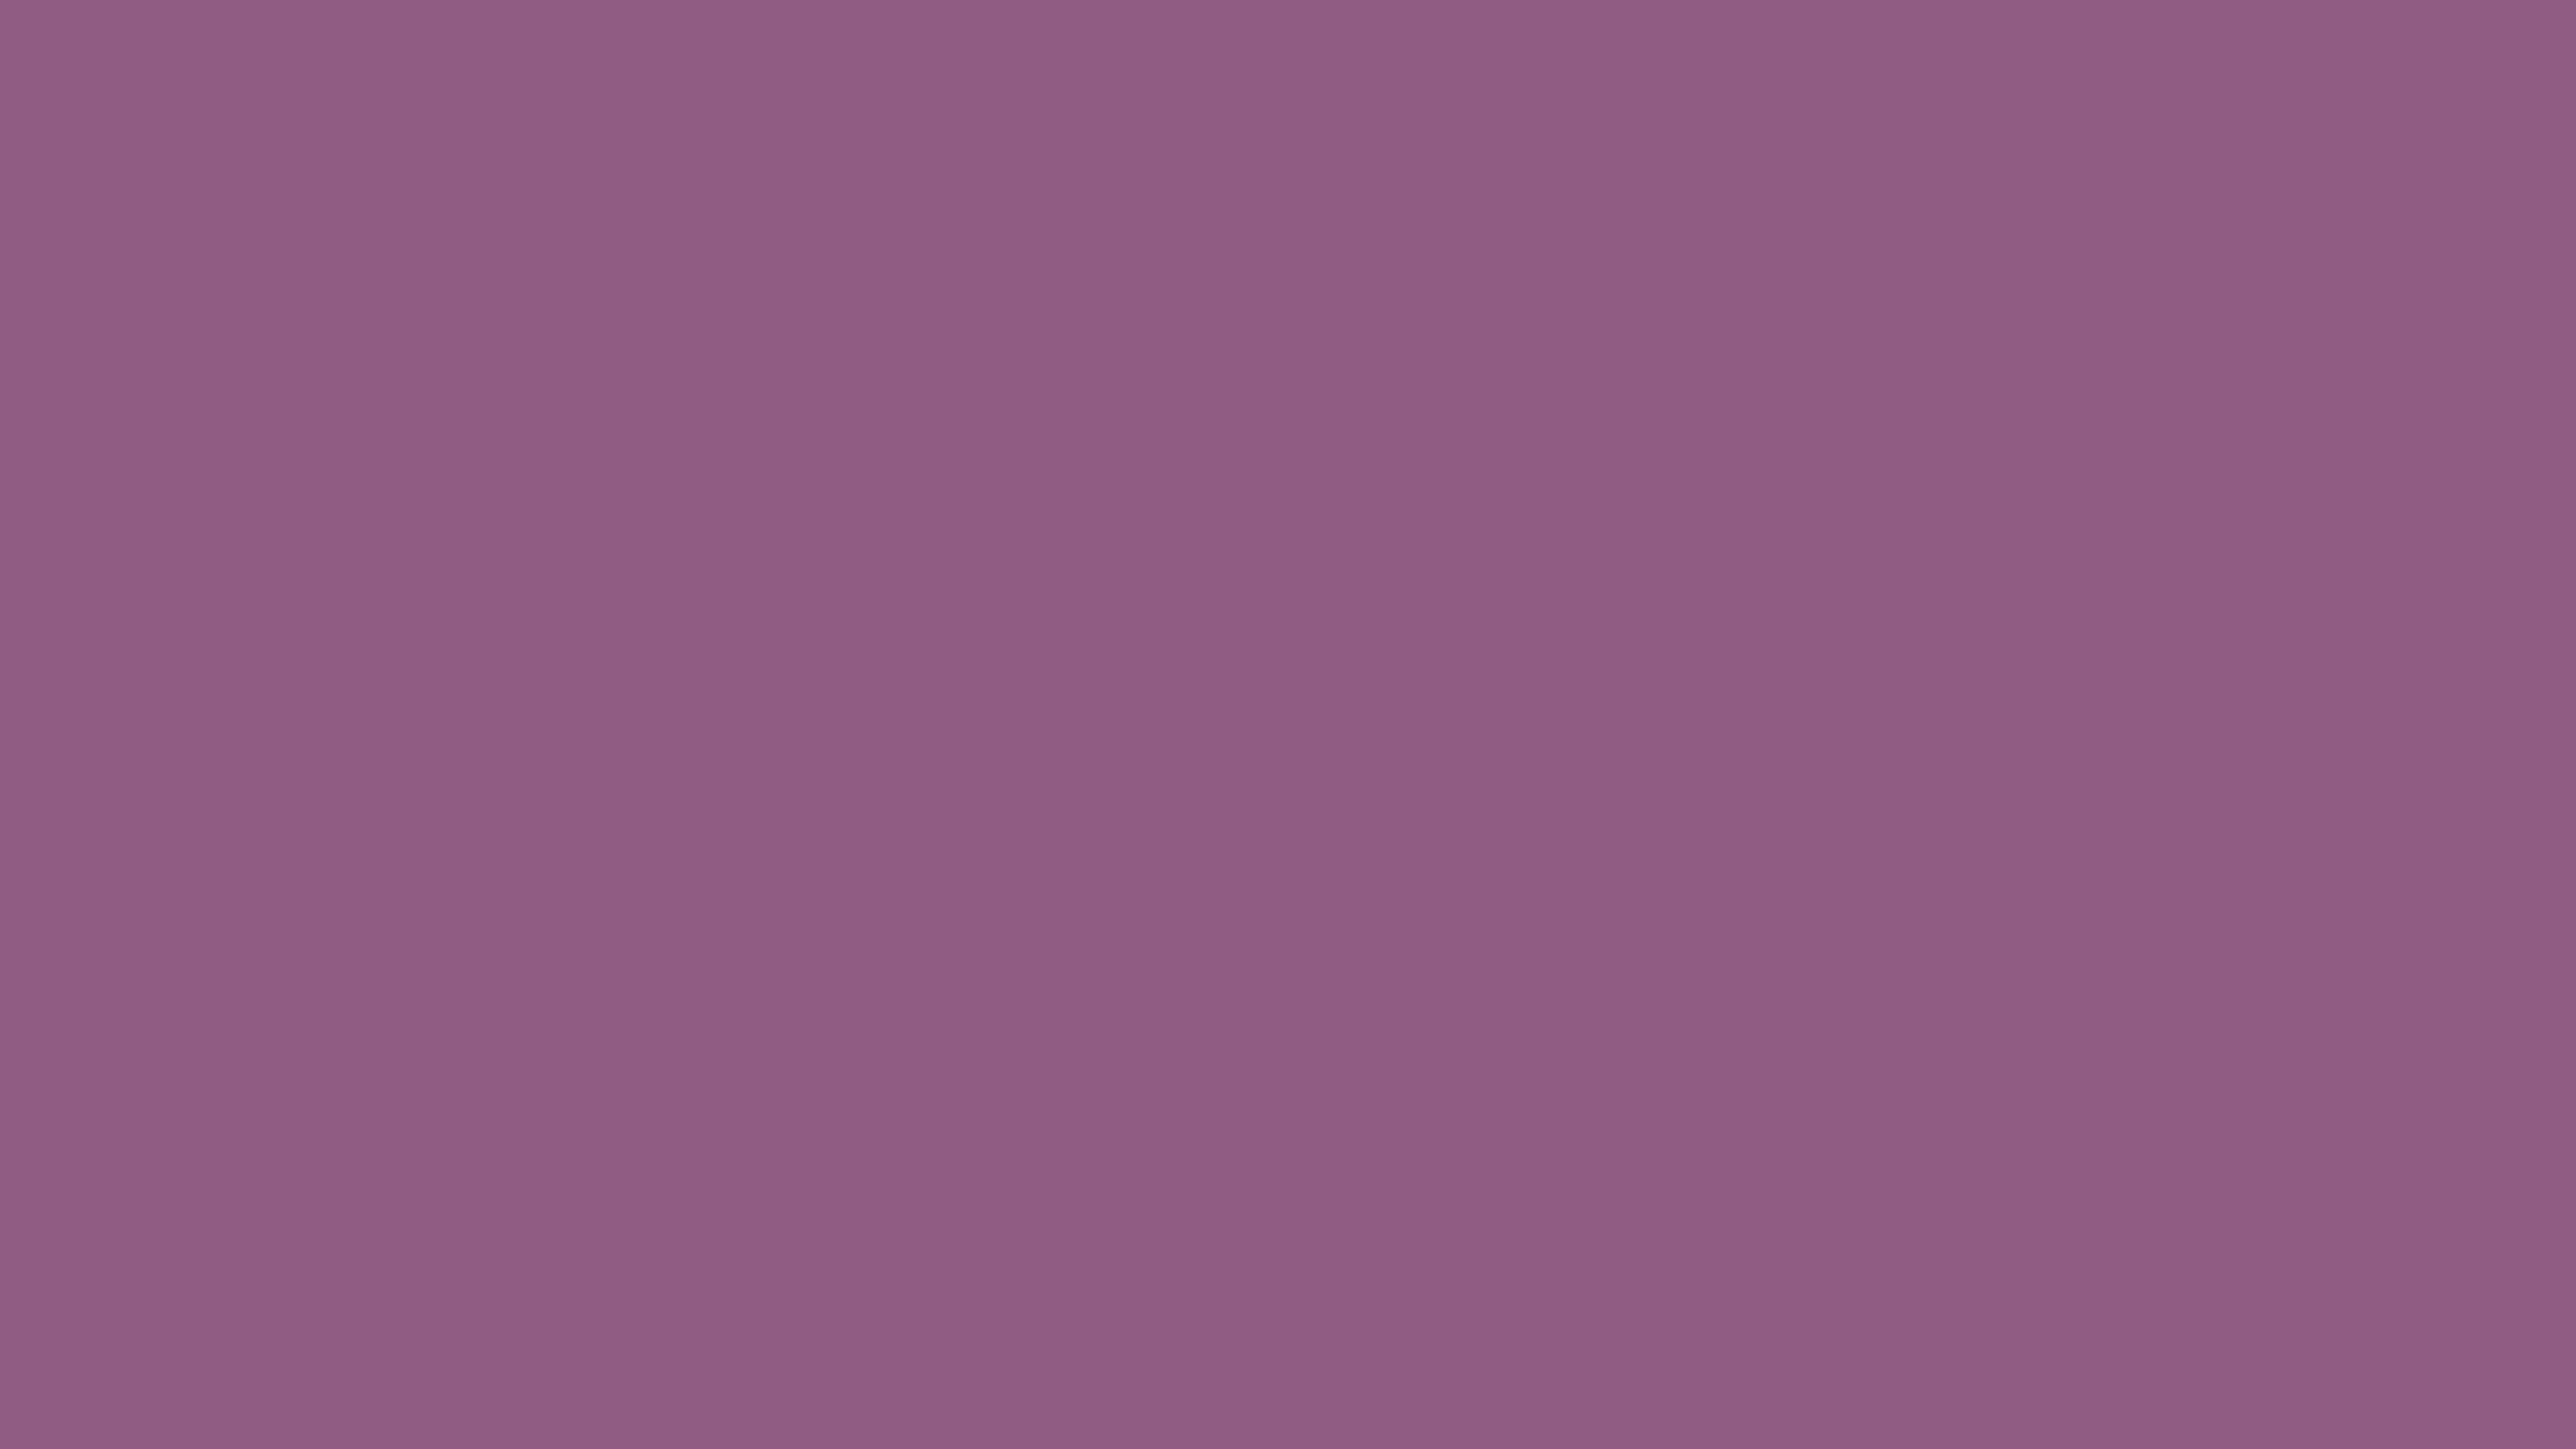 5120x2880 Antique Fuchsia Solid Color Background